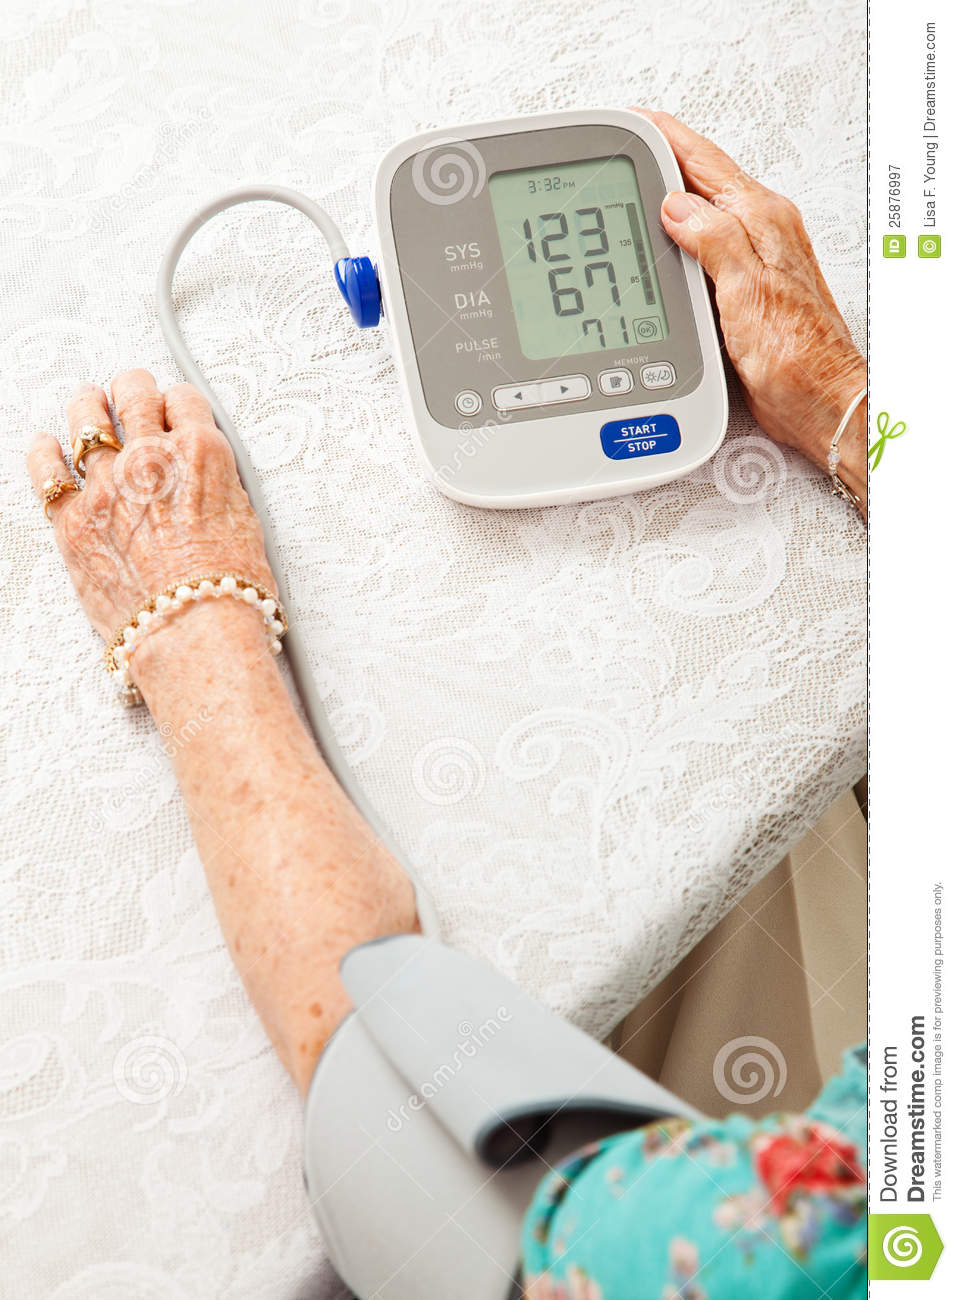 taking blood pressure 10 steps to accurate manual blood pressure measurement monday, 27 july 2009 a 24 hour blood pressure study may be required to assess the patient's overall blood pressure profile take this with youdownload a free e-book 10 steps to accurate manual bp measurement.